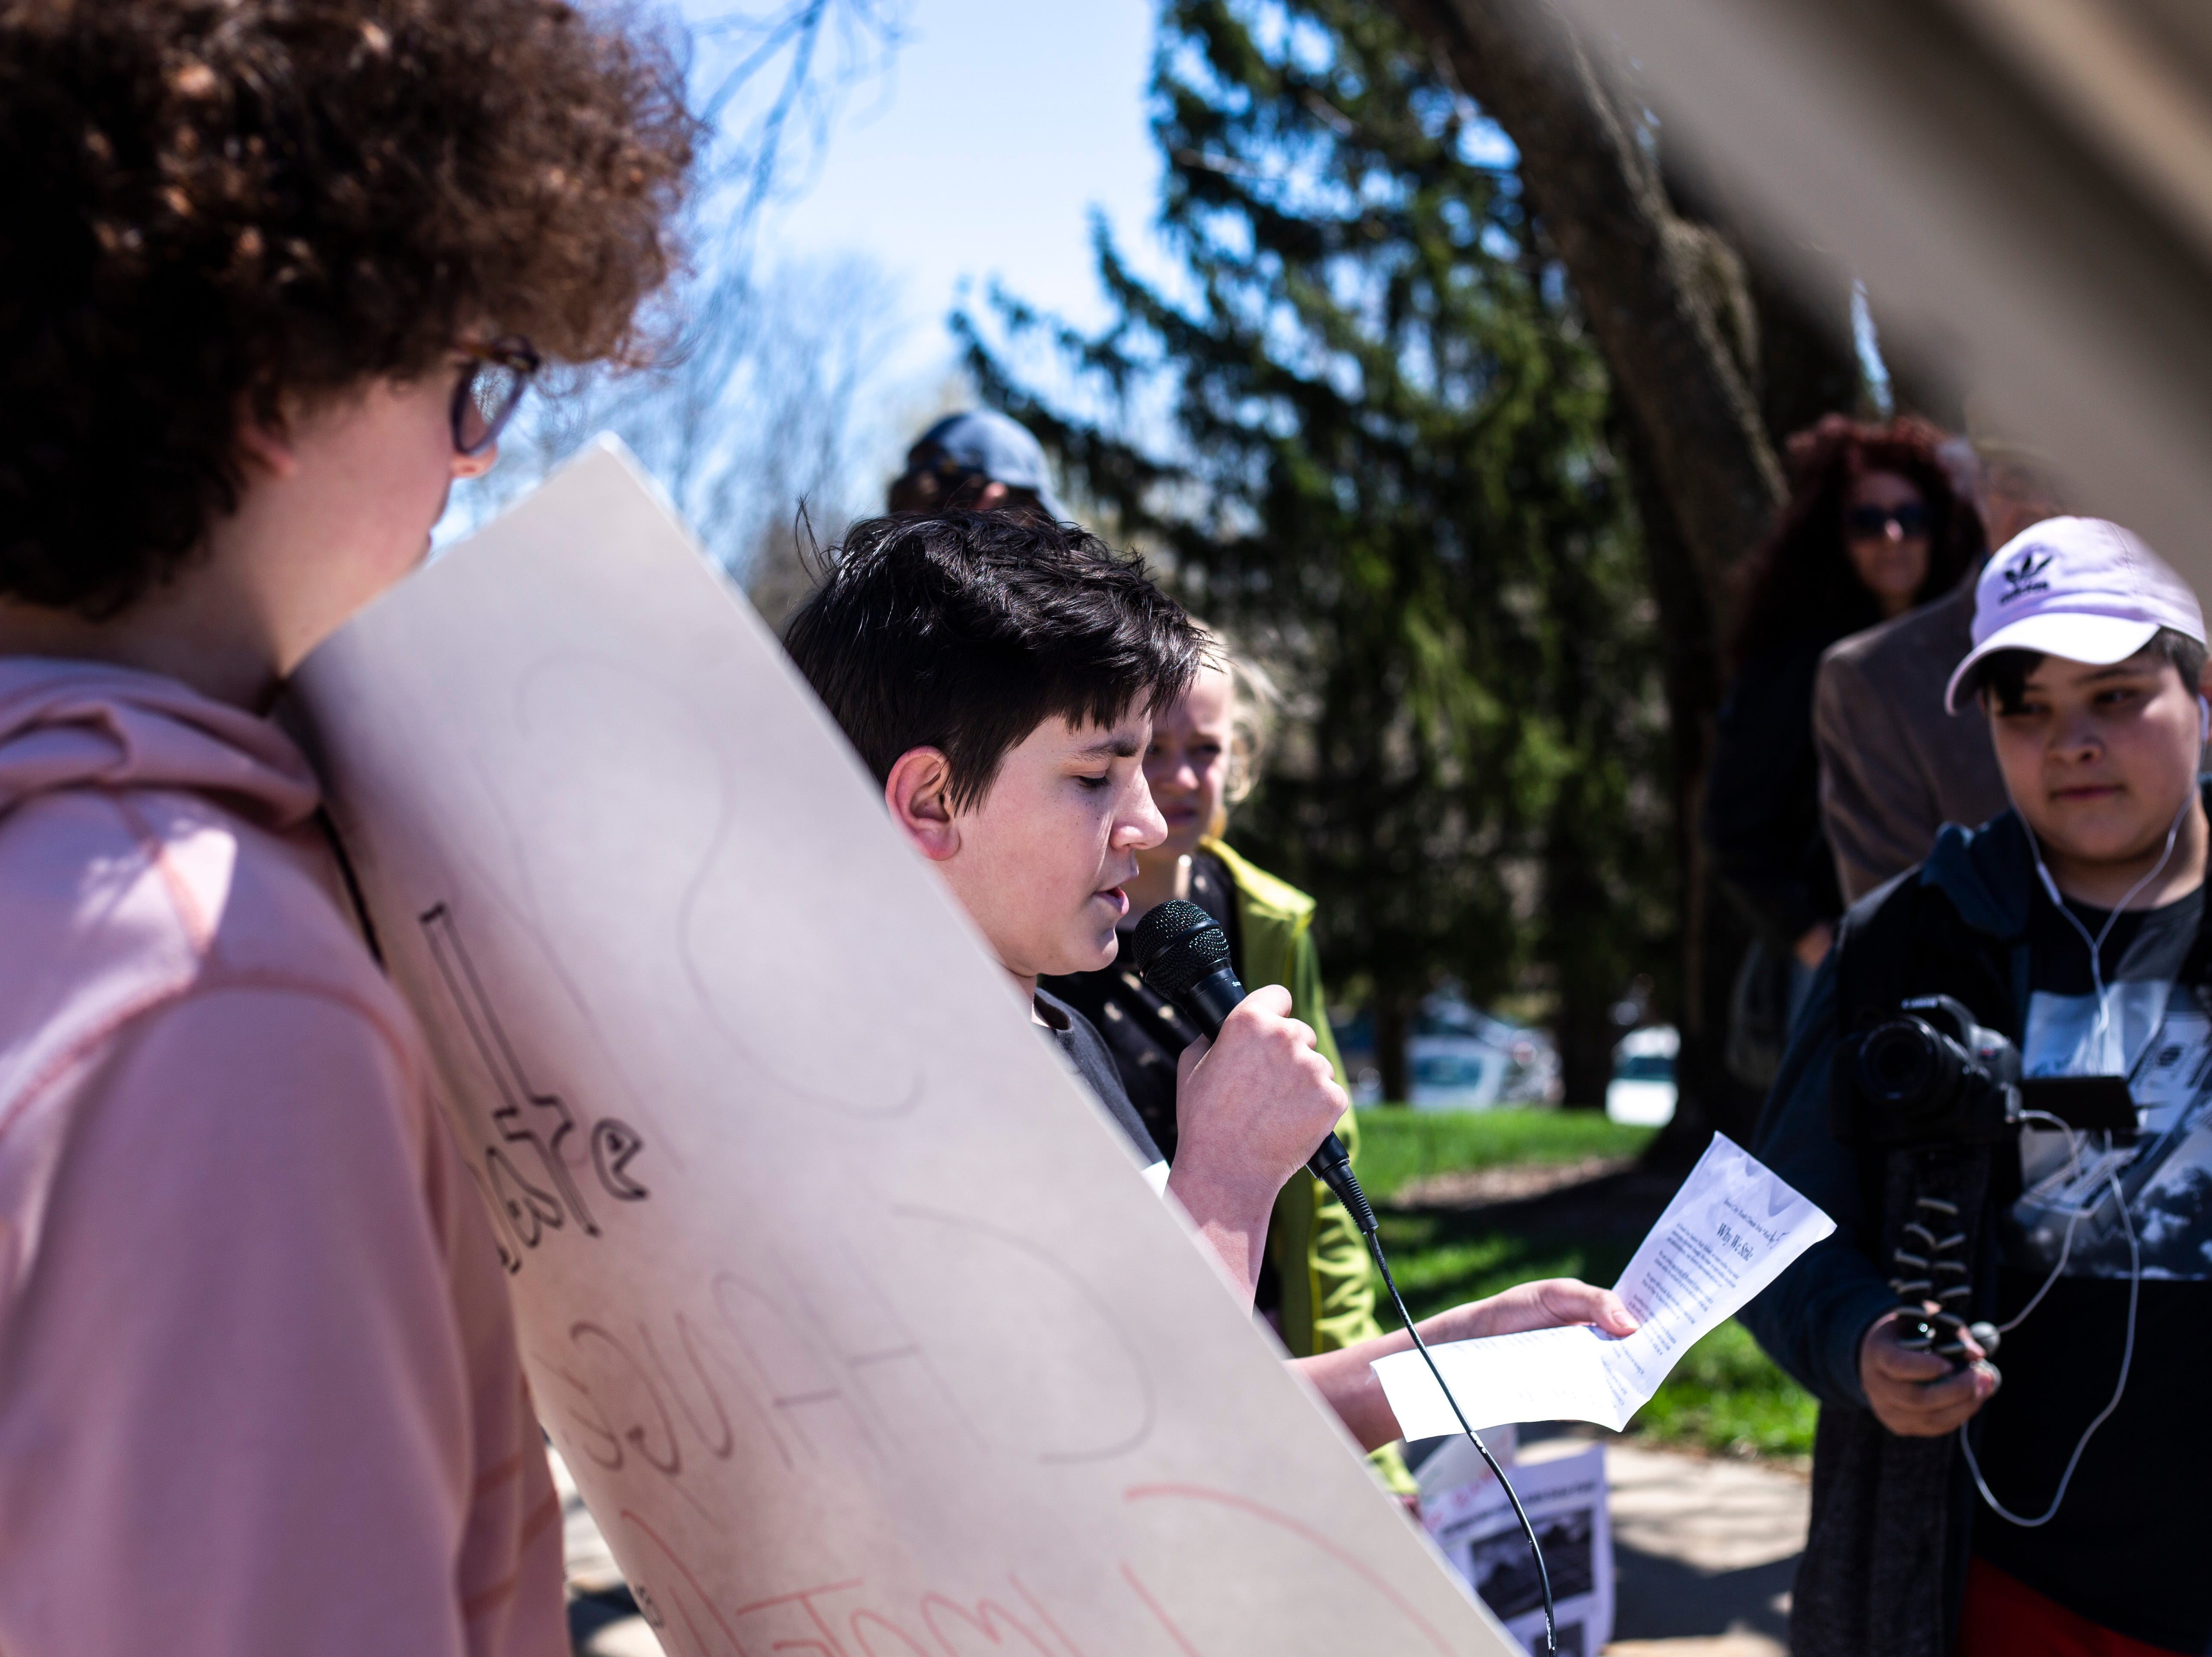 Alex Howe, a South East Junior High eight-grader, speaks during a weekly walkout demanding solar panels on school buildings, Friday, April 19, 2019, outside the Iowa City Community School District offices along North Dodge Street in Iowa City, Iowa.